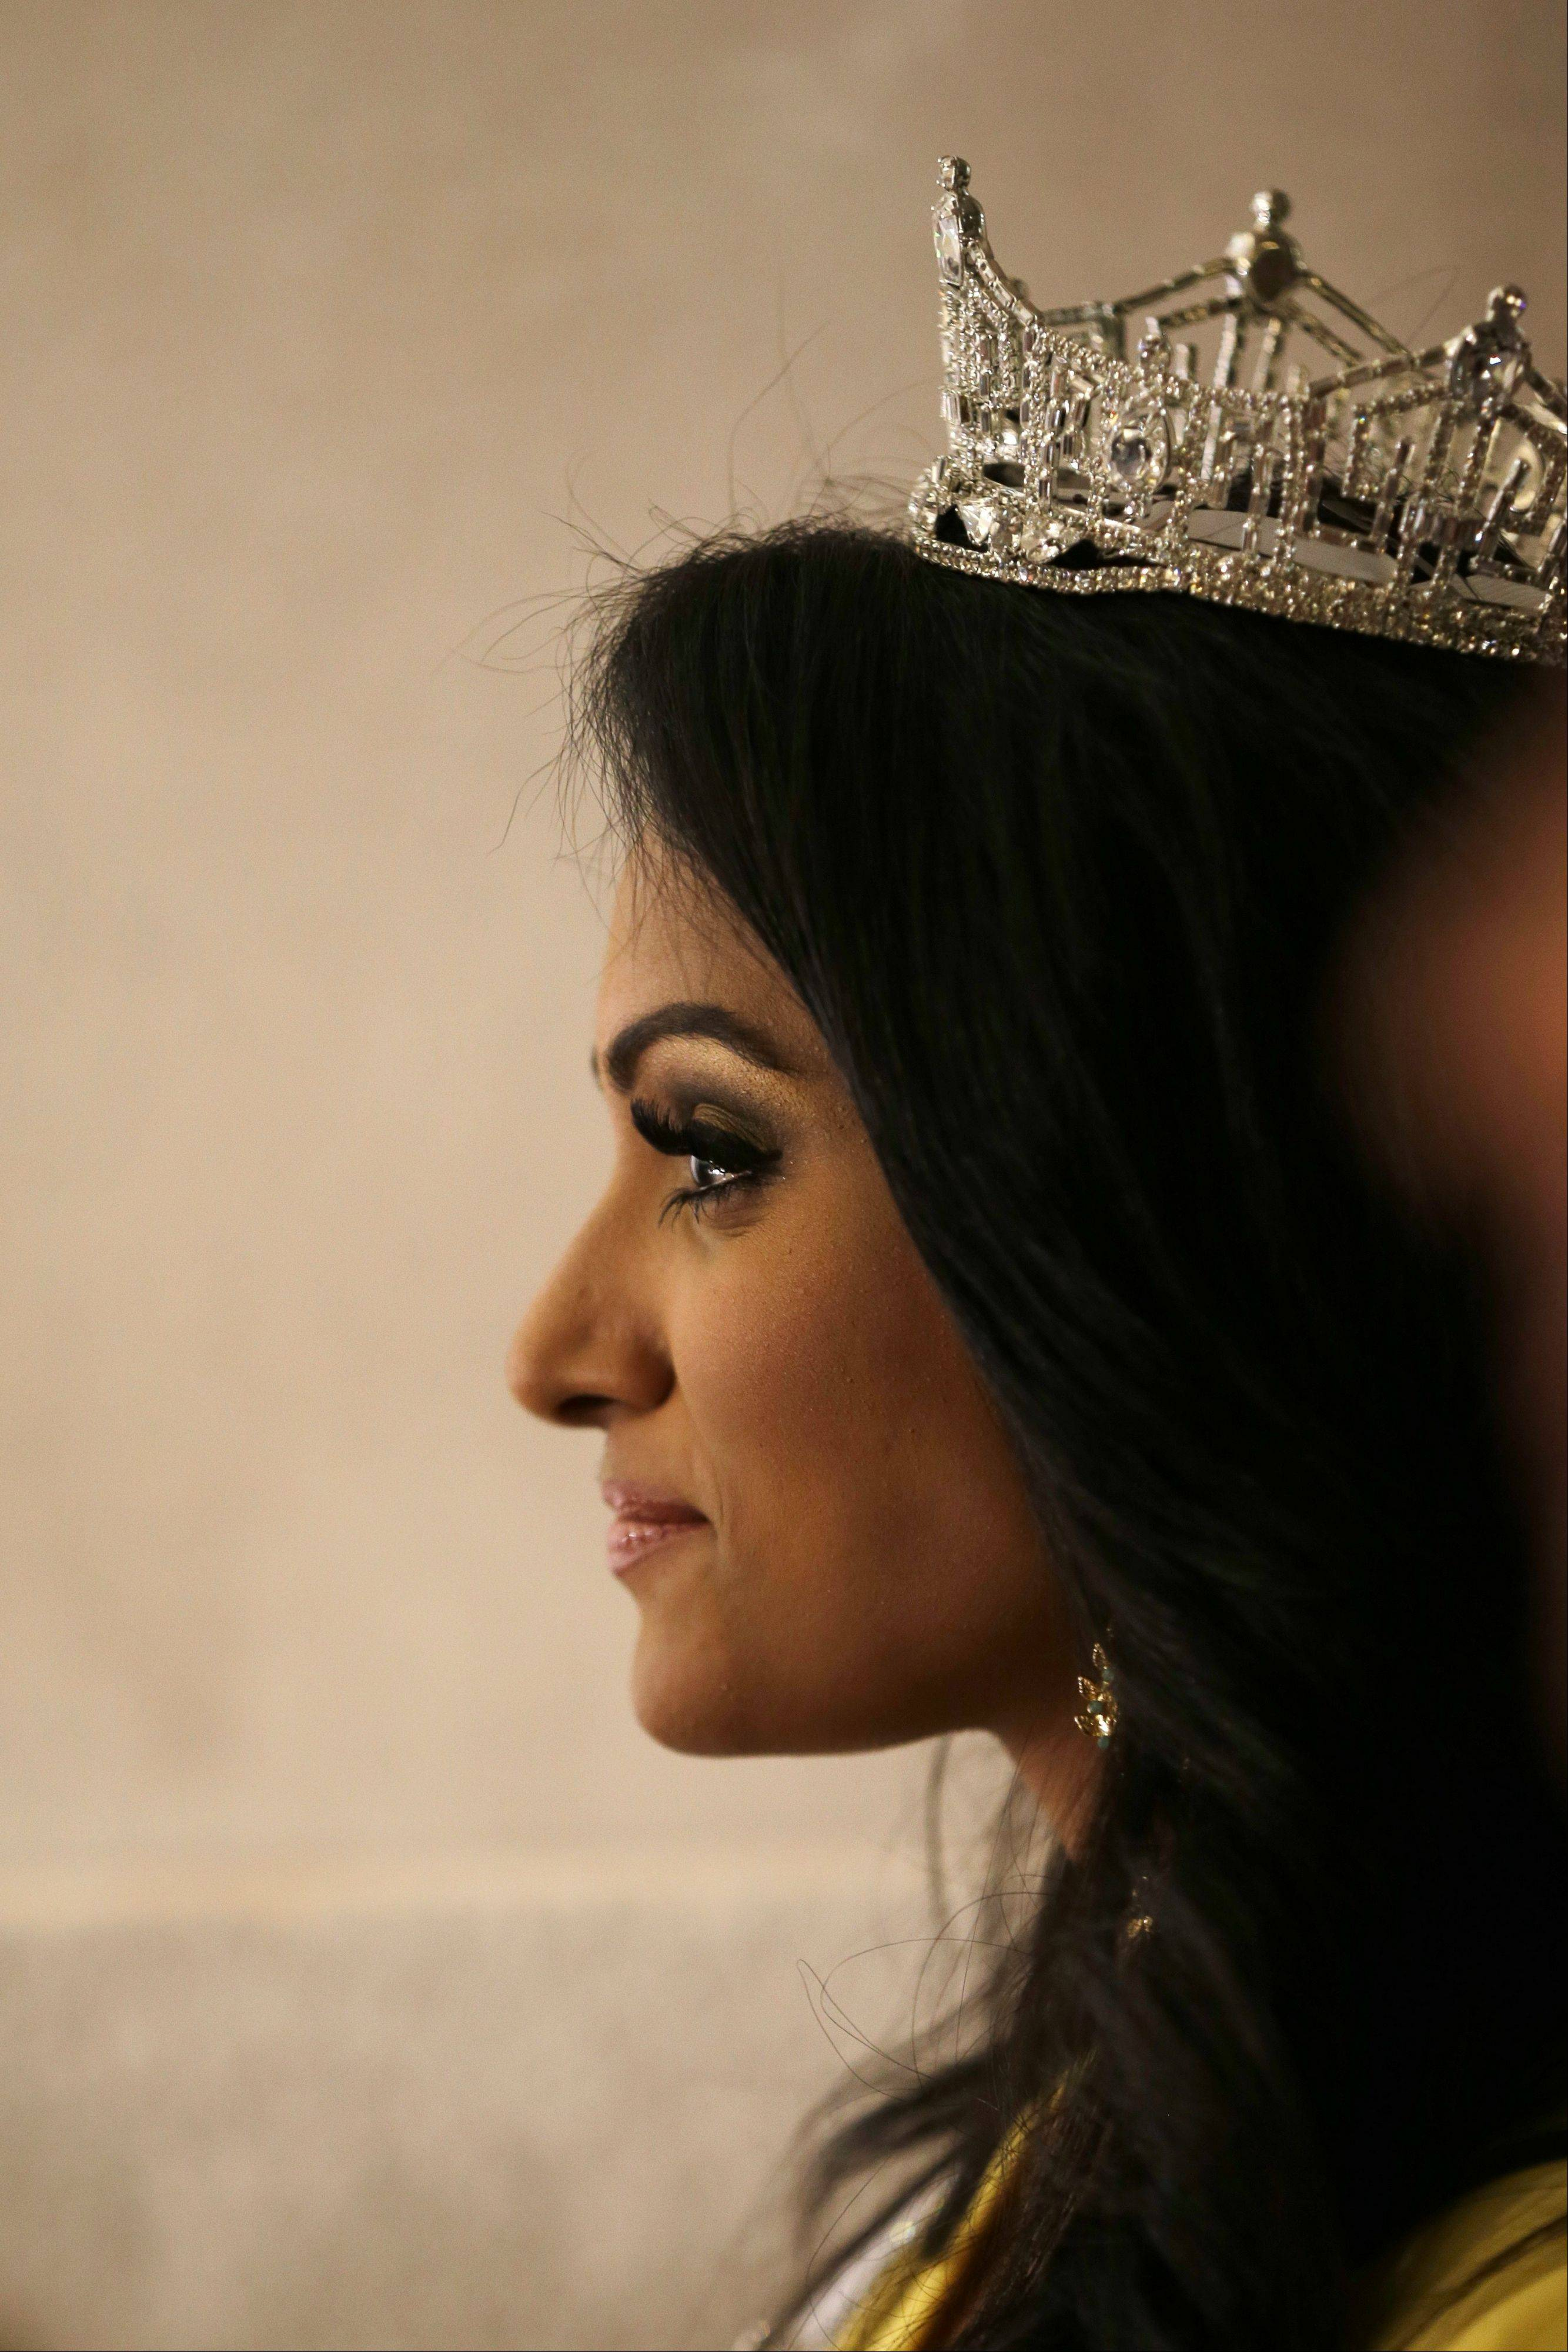 Miss New York Nina Davuluri waits to be introduced during a news conference following her crowning as Miss America 2014 on Sunday night in Atlantic City, N.J.